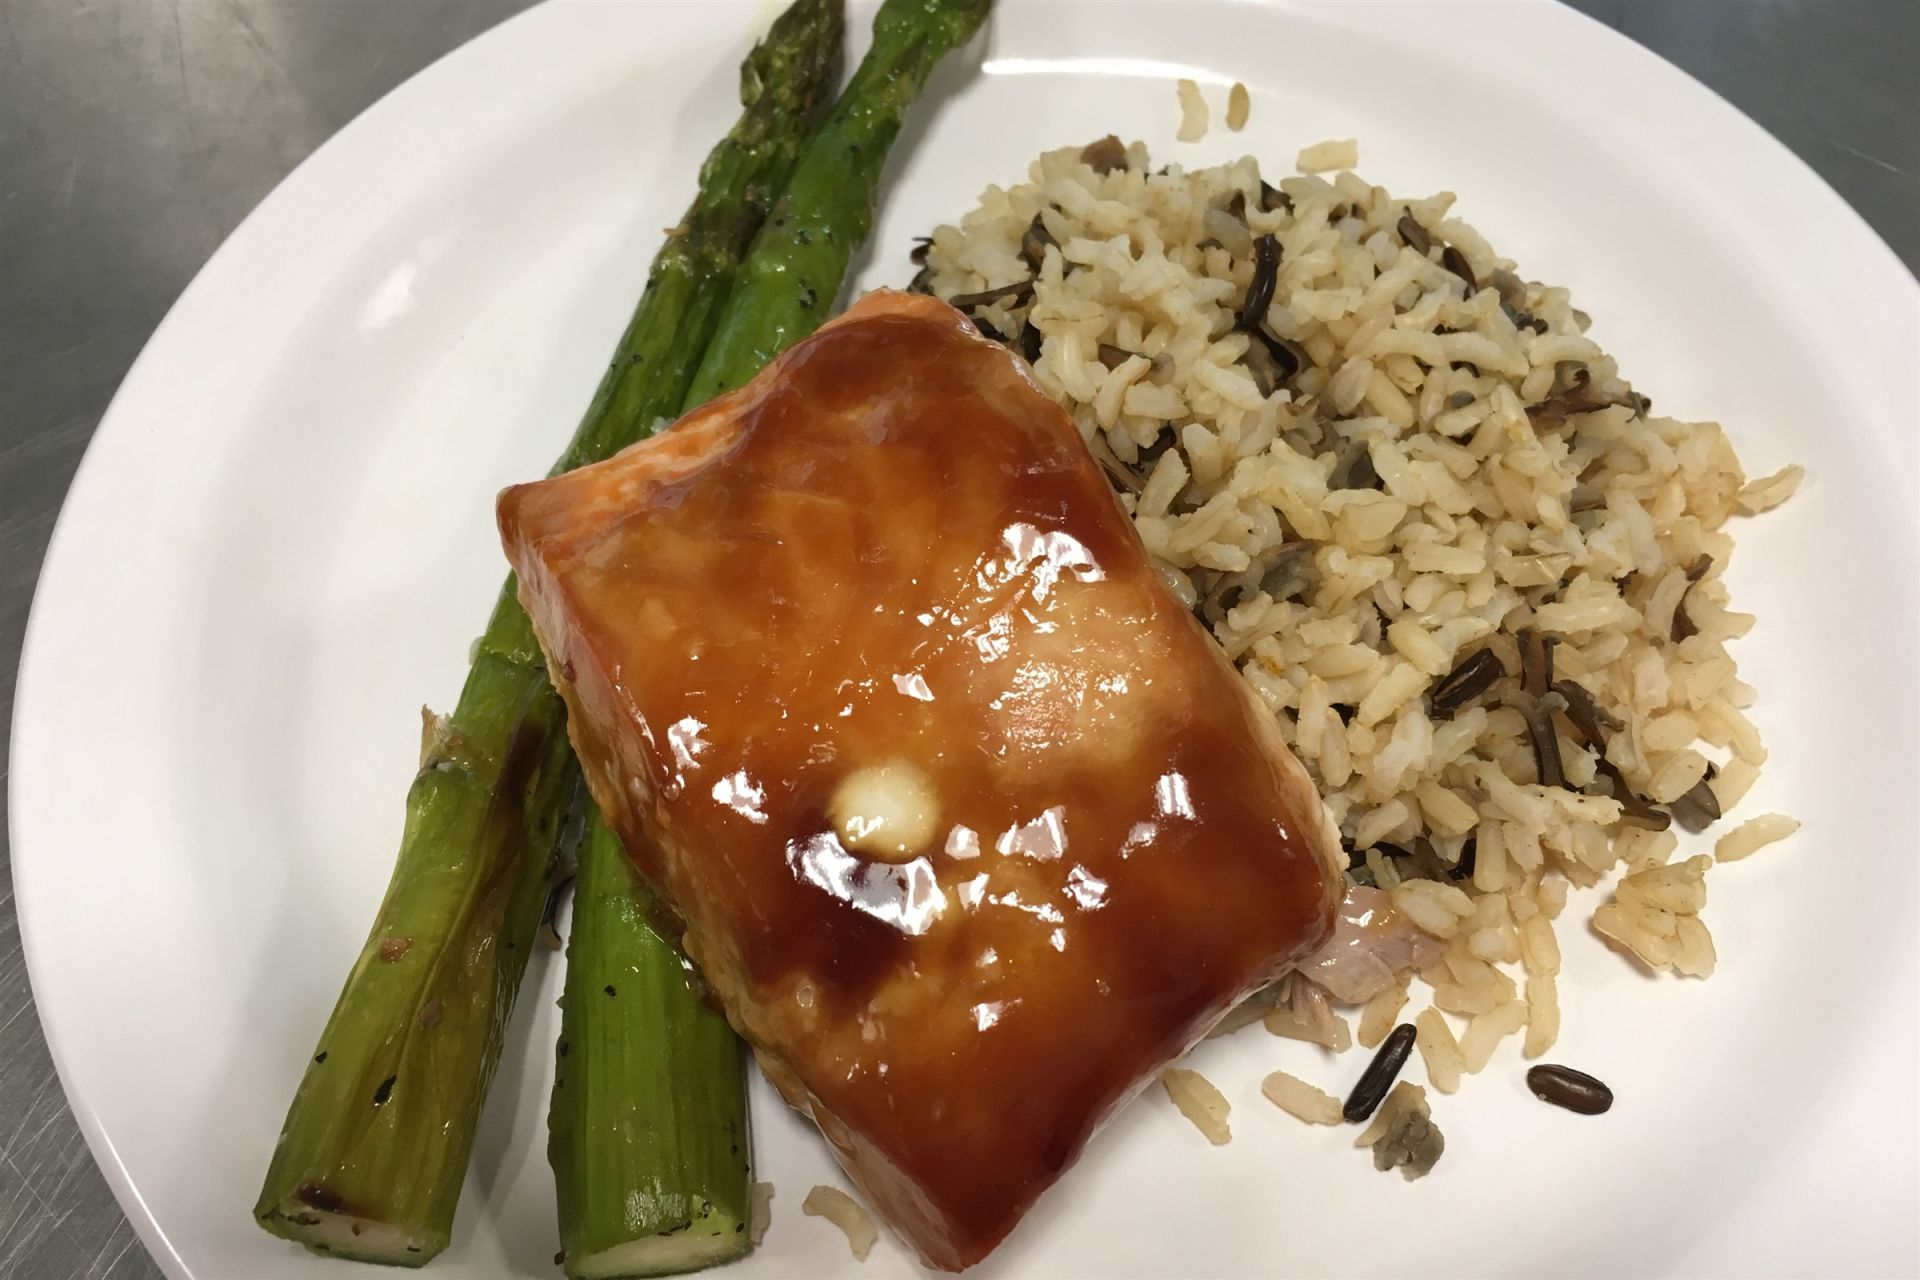 Soy glazed salmon with wild rice pilaf and asparagus.